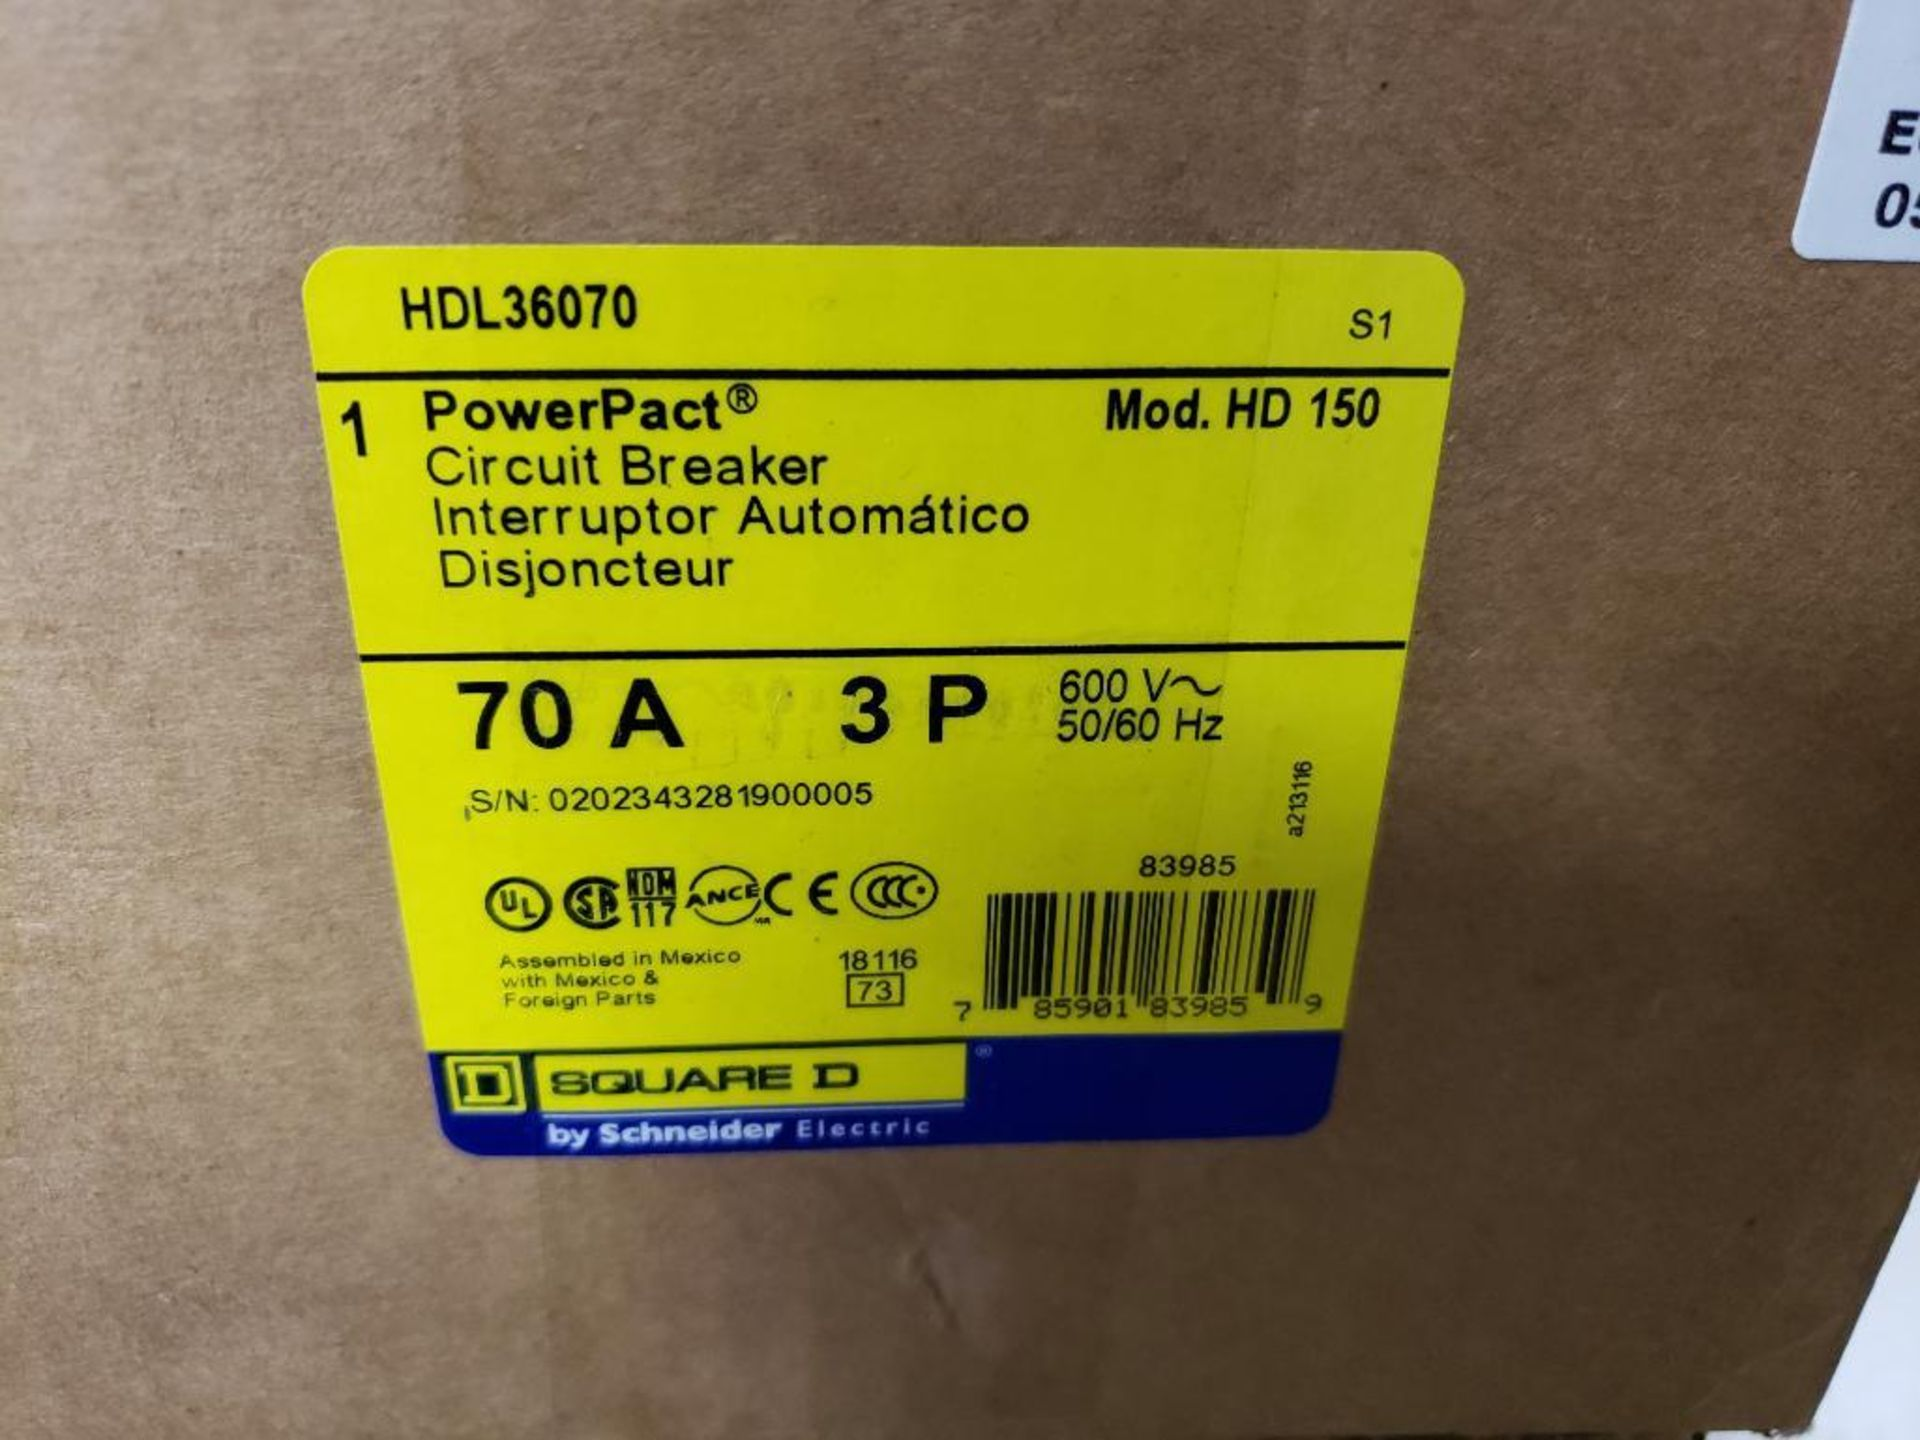 Qty 2 - Square D PowerPact circuit breaker. Model HDL36070. 70amp 3 phase. New in box. - Image 2 of 2